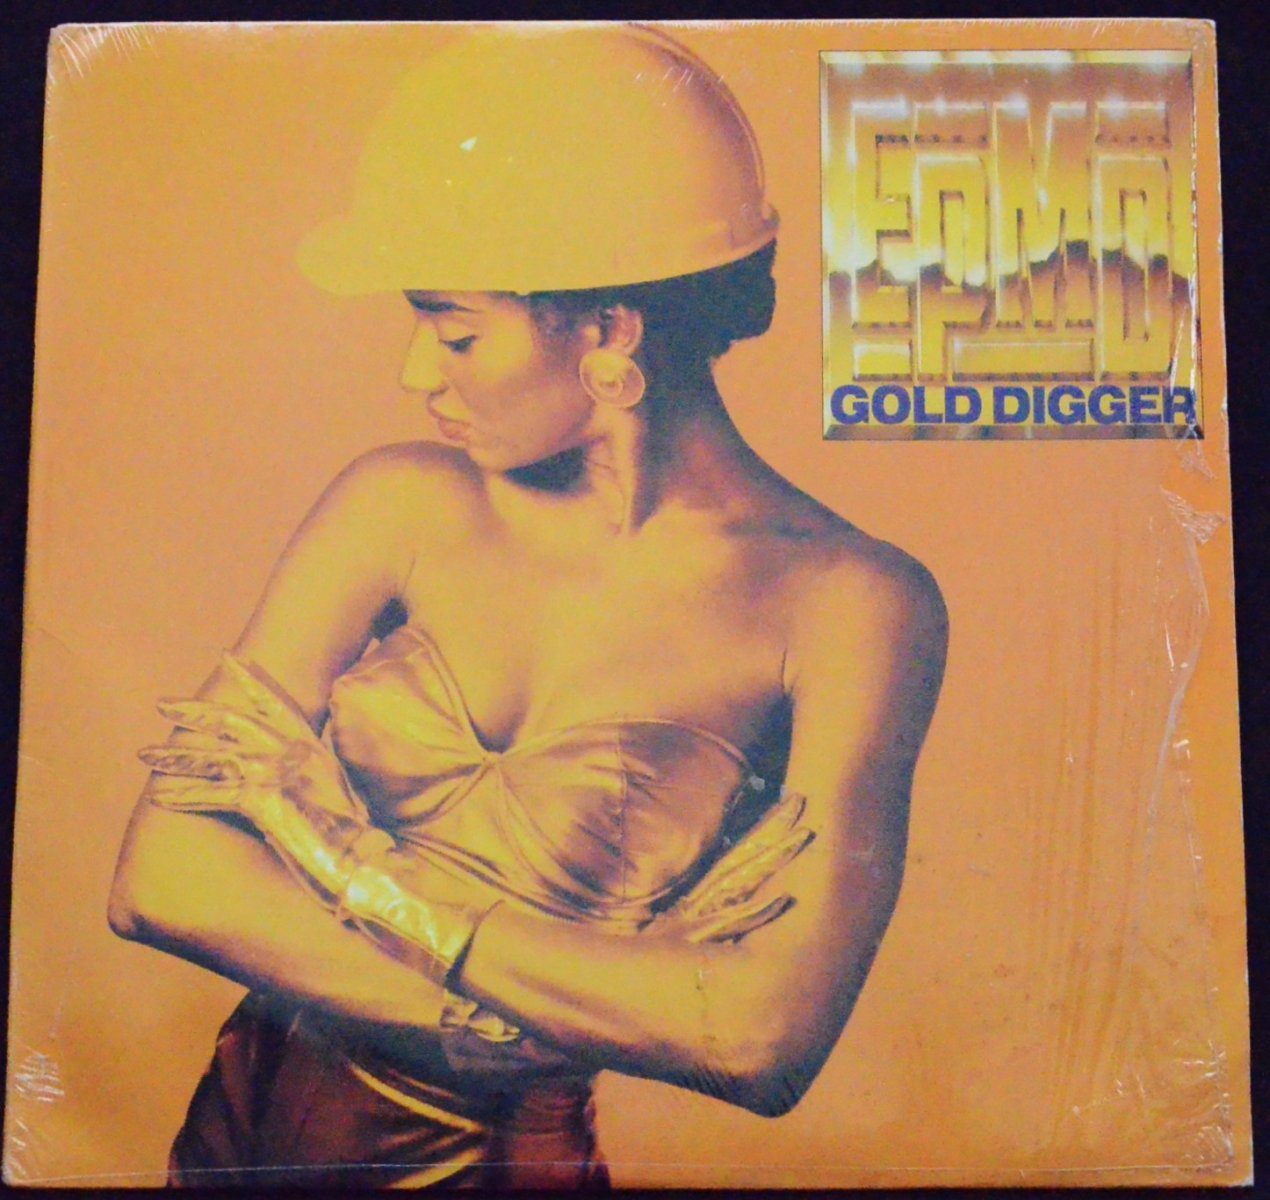 EPMD ‎/ GOLD DIGGER / RAP IS OUTTA (12